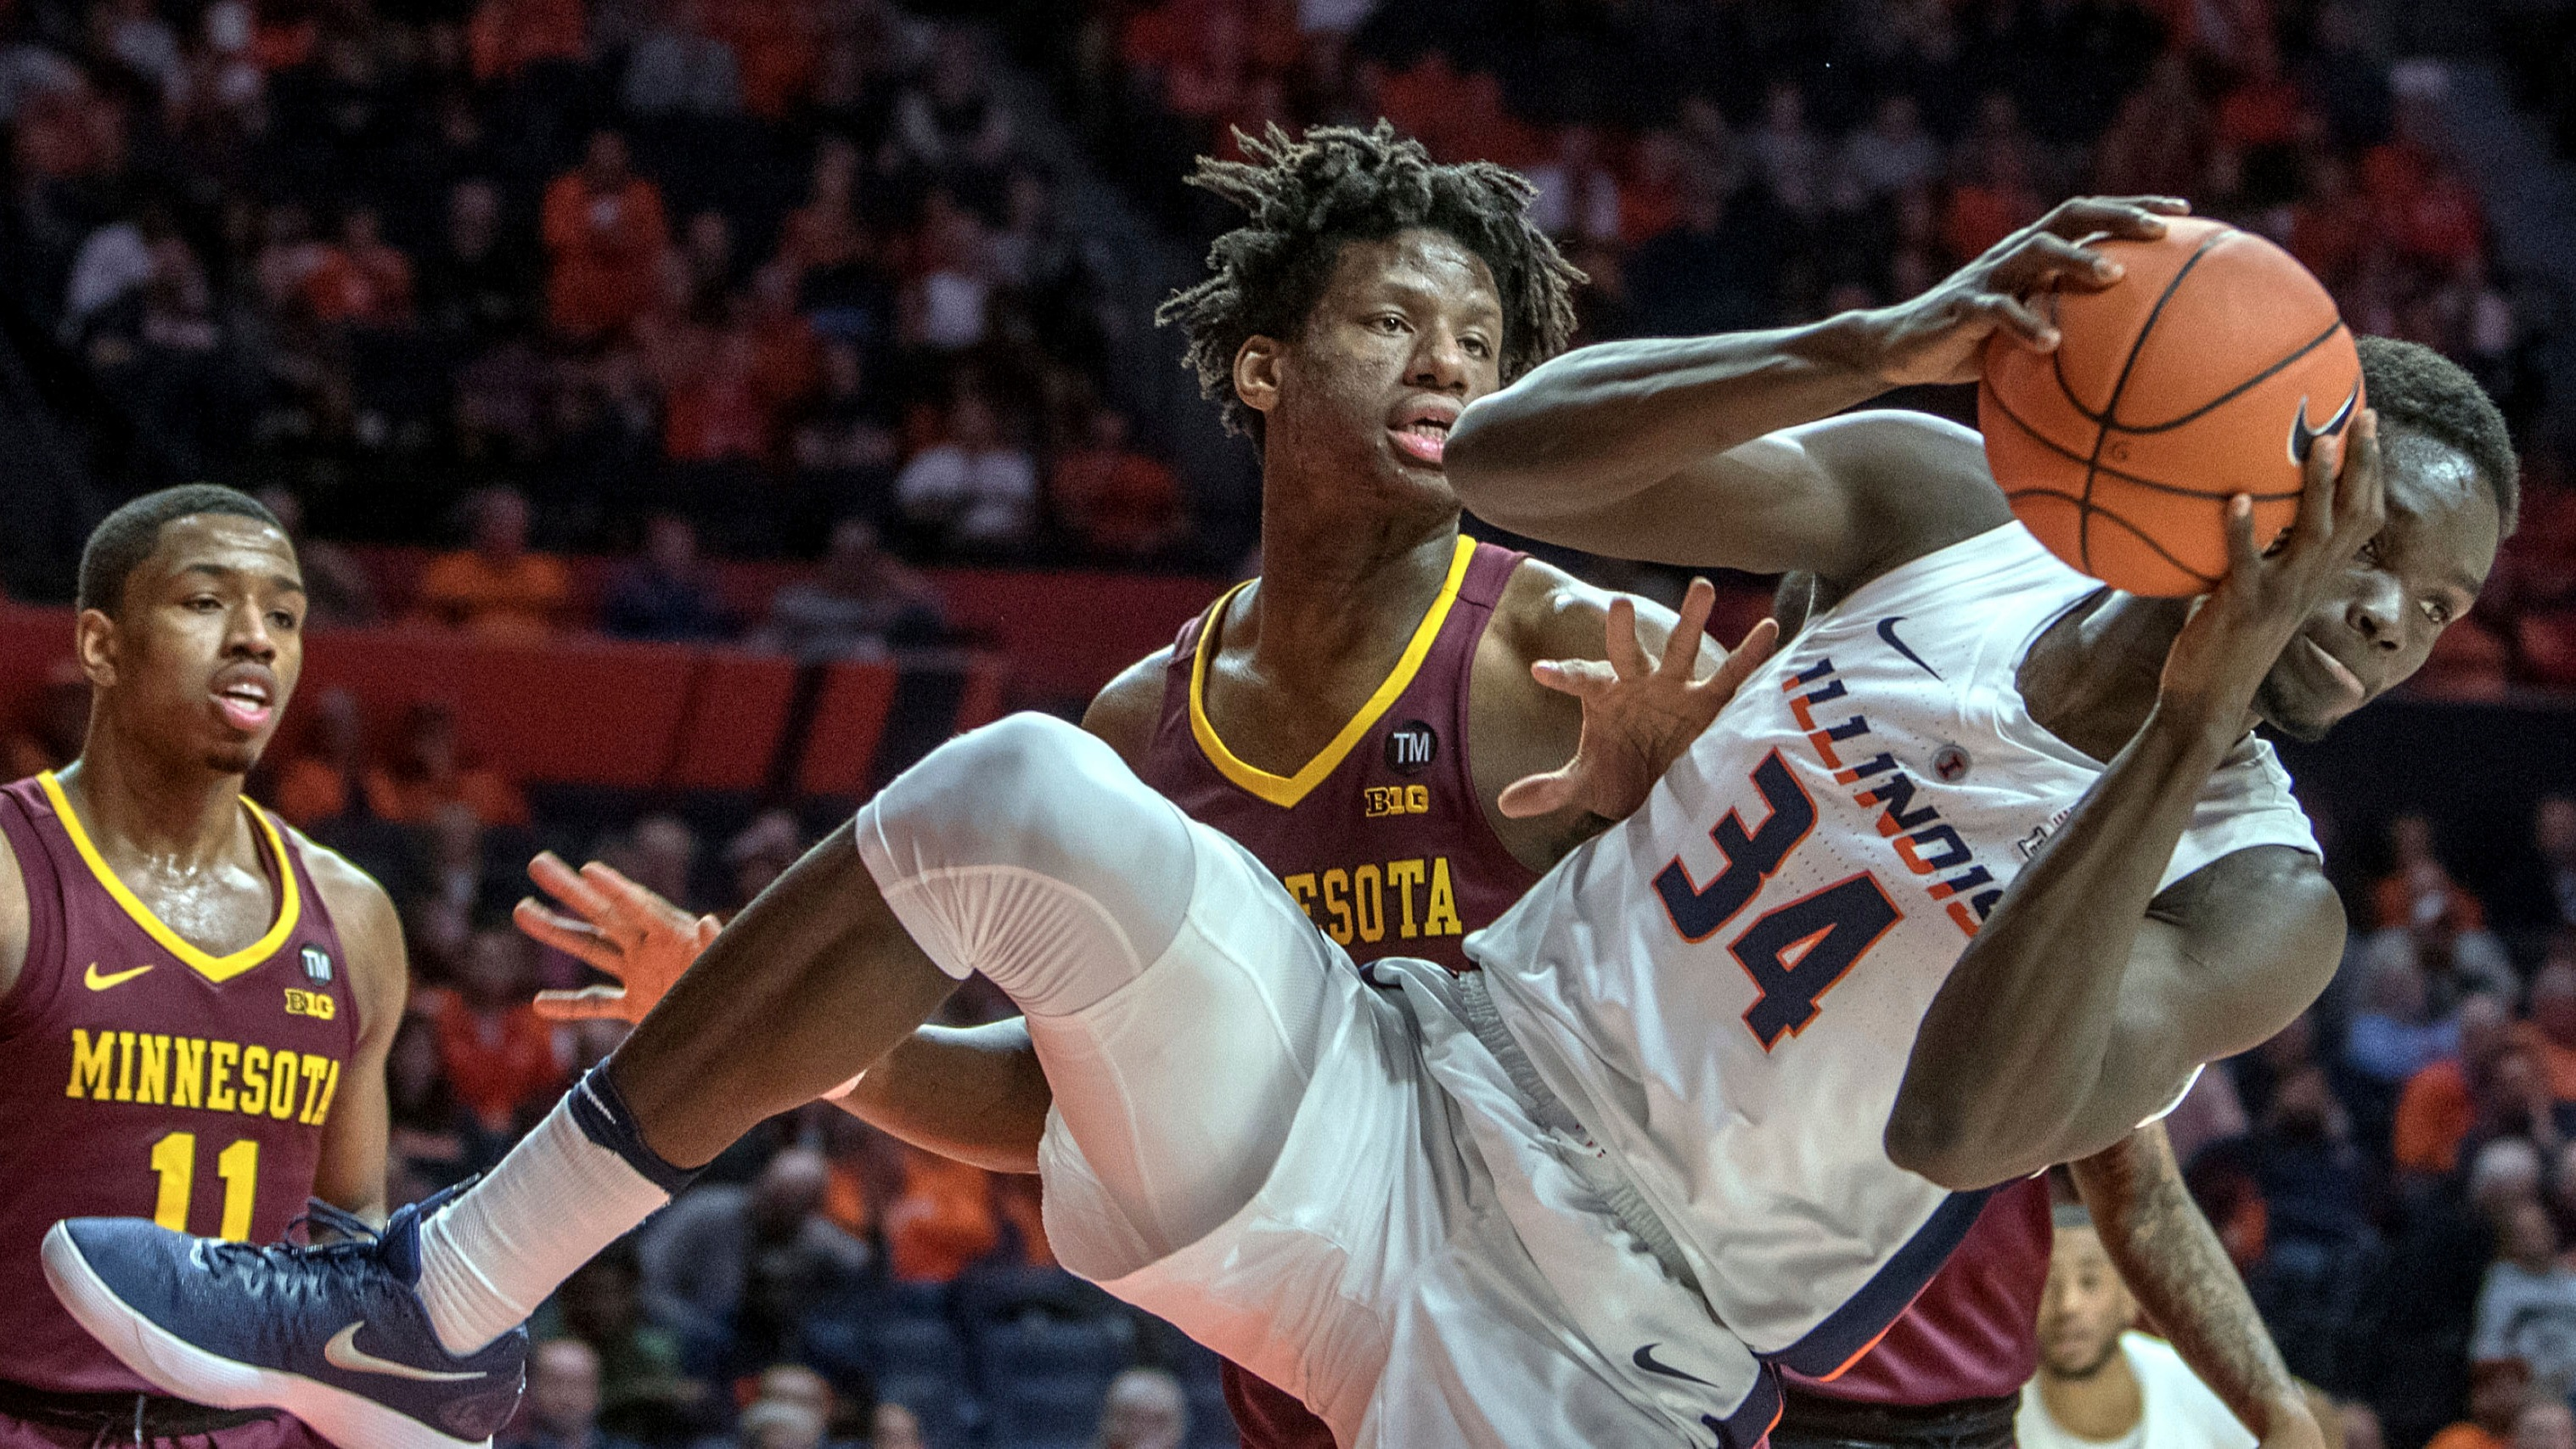 College basketball betting lines, odds, predictions: Minnesota out